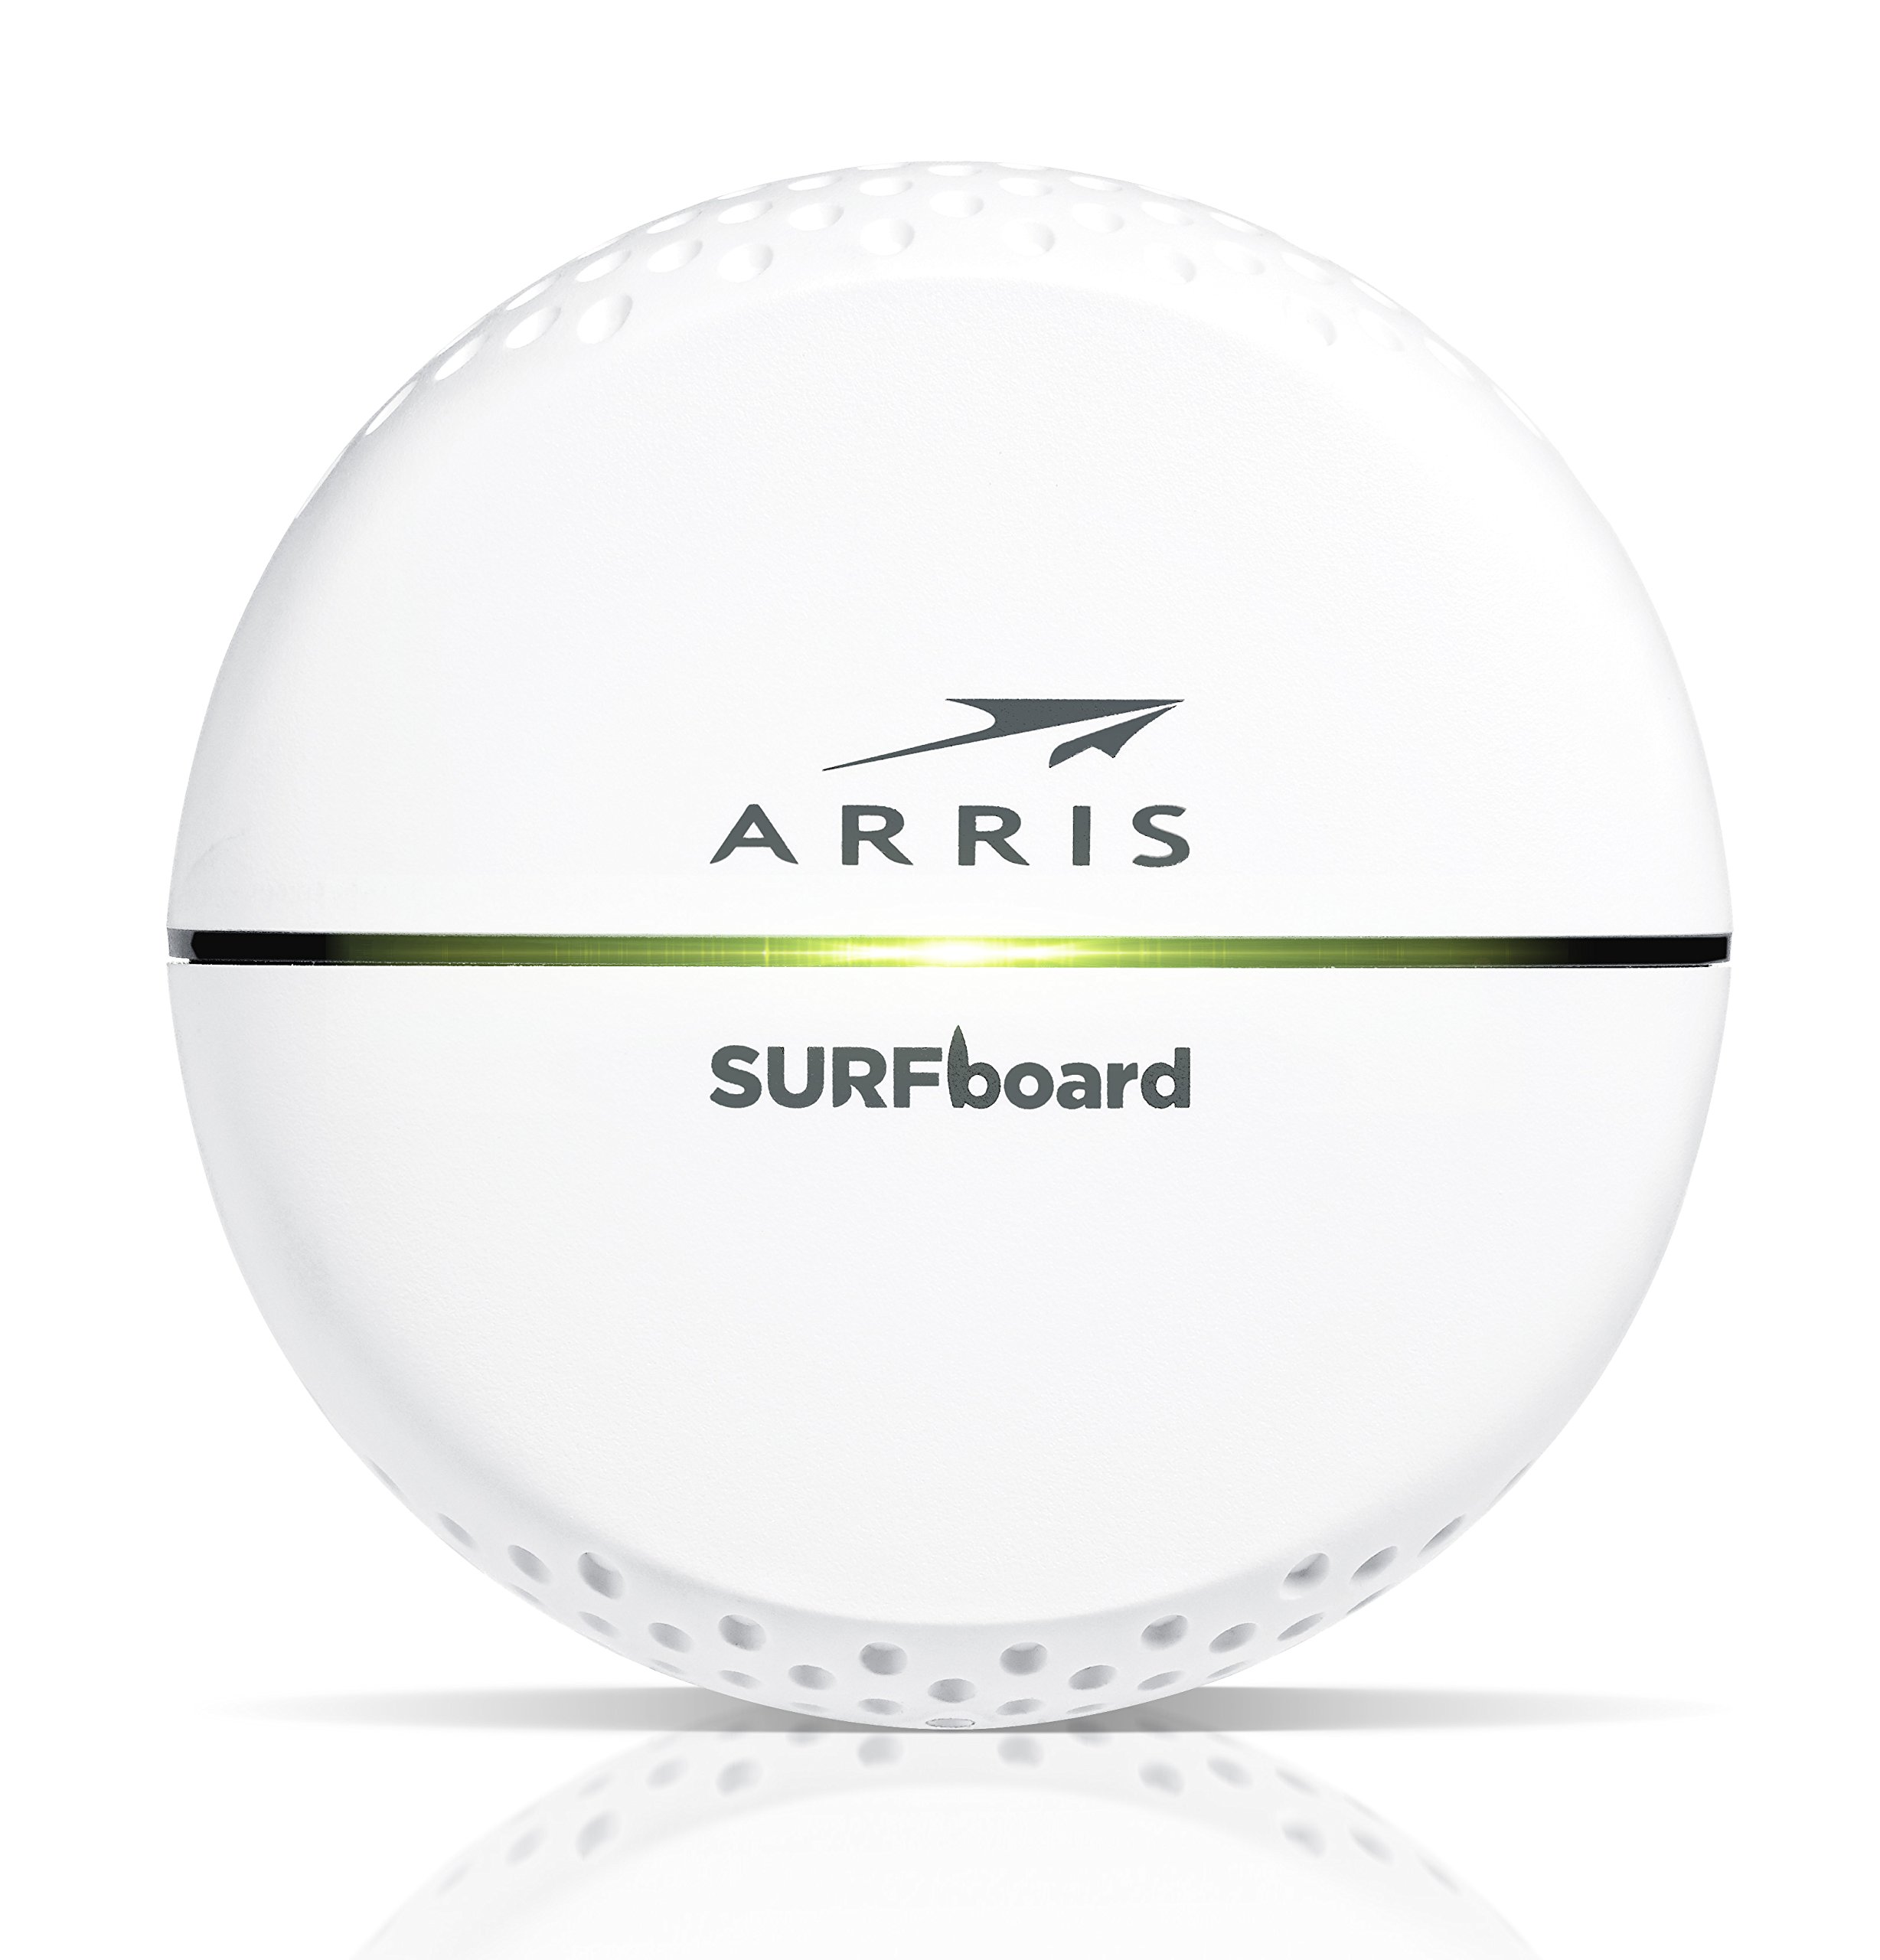 ARRIS SURFboard SBX-1000P Wired Network Extender with Ripcurrent Using G.hn by ARRIS (Image #1)